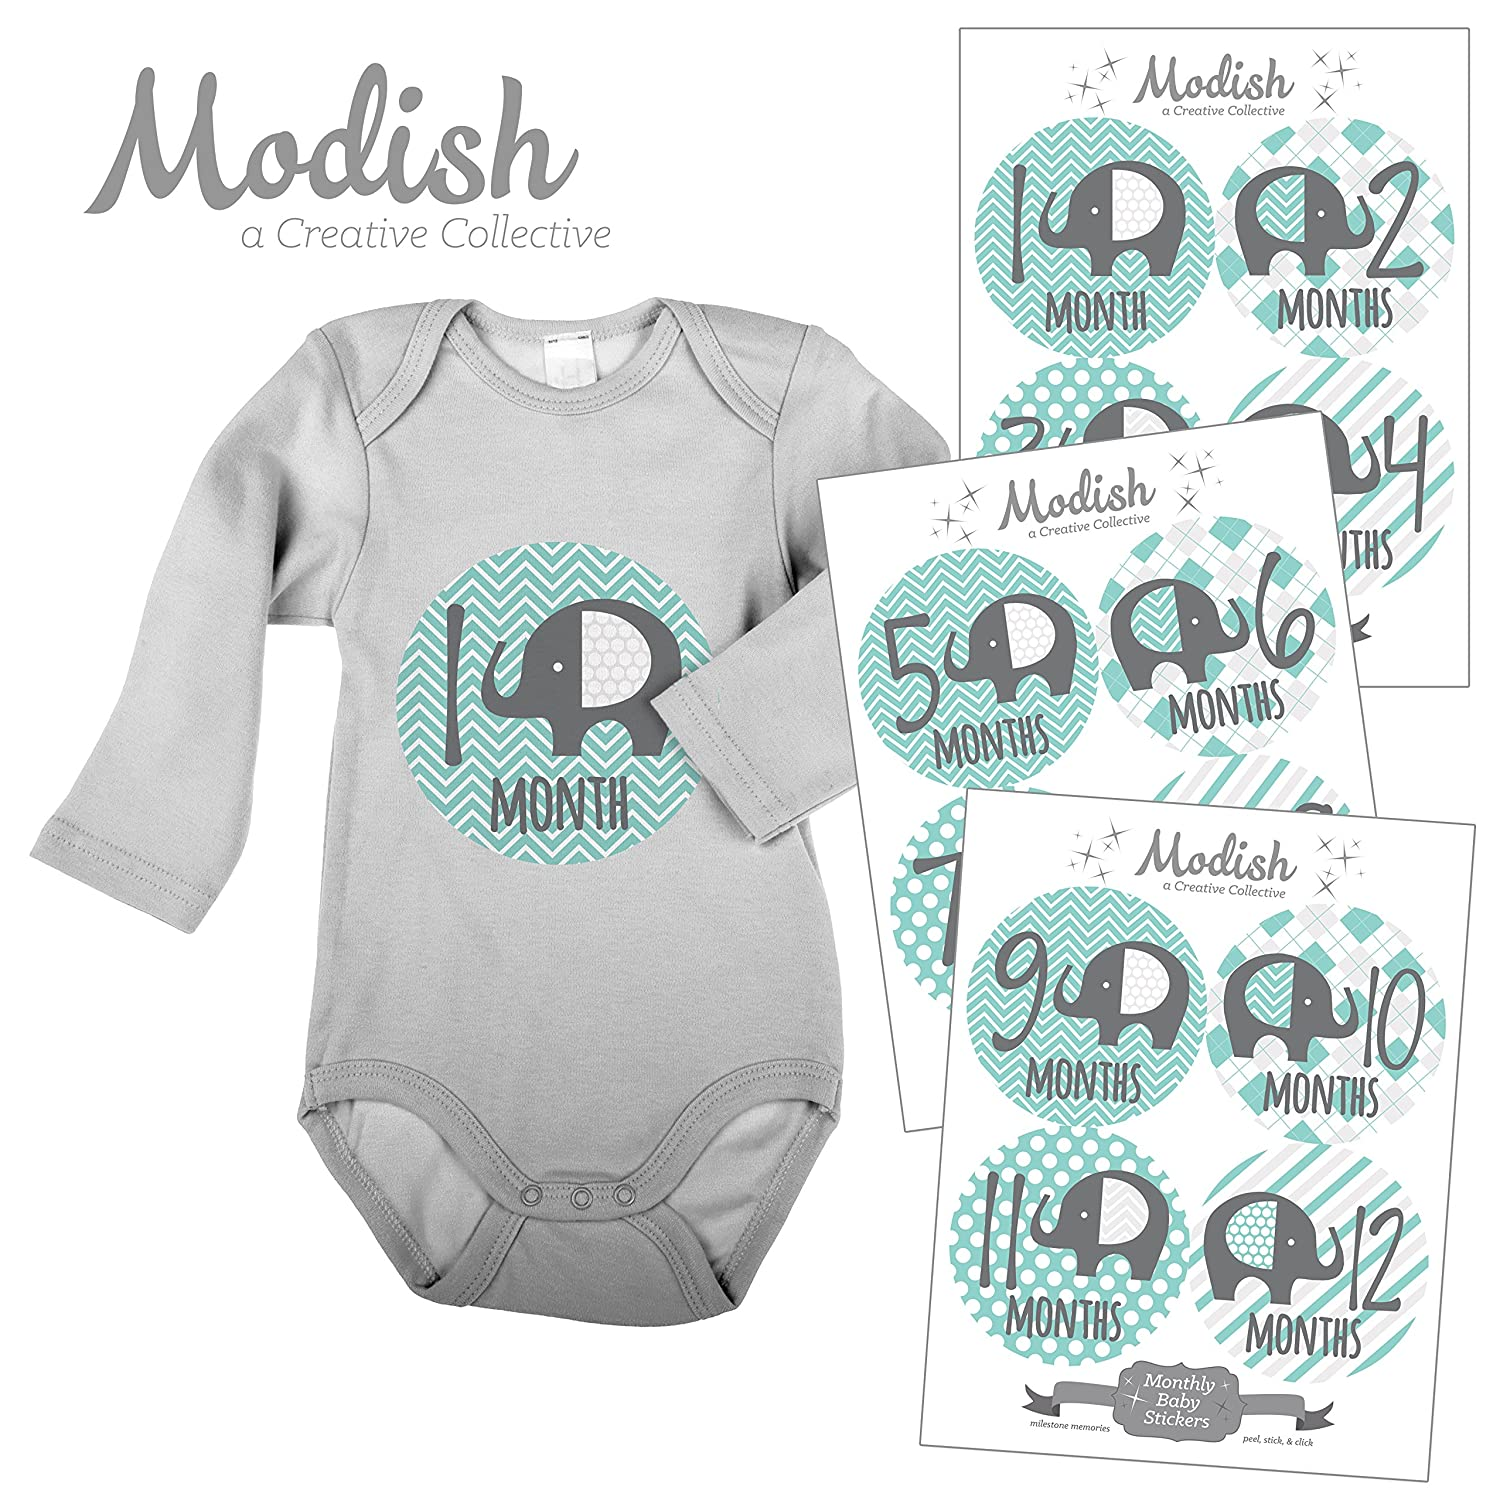 Modish - Creative Collective Baby Stickers, Elephants, Baby Boy, Elephant Baby Belly Stickers, Elephant Baby Month Stickers, First Year Stickers Months 1-12, Teal, Mint, Elephants, Boy, Grey Modish Labels Inc. 687847978220